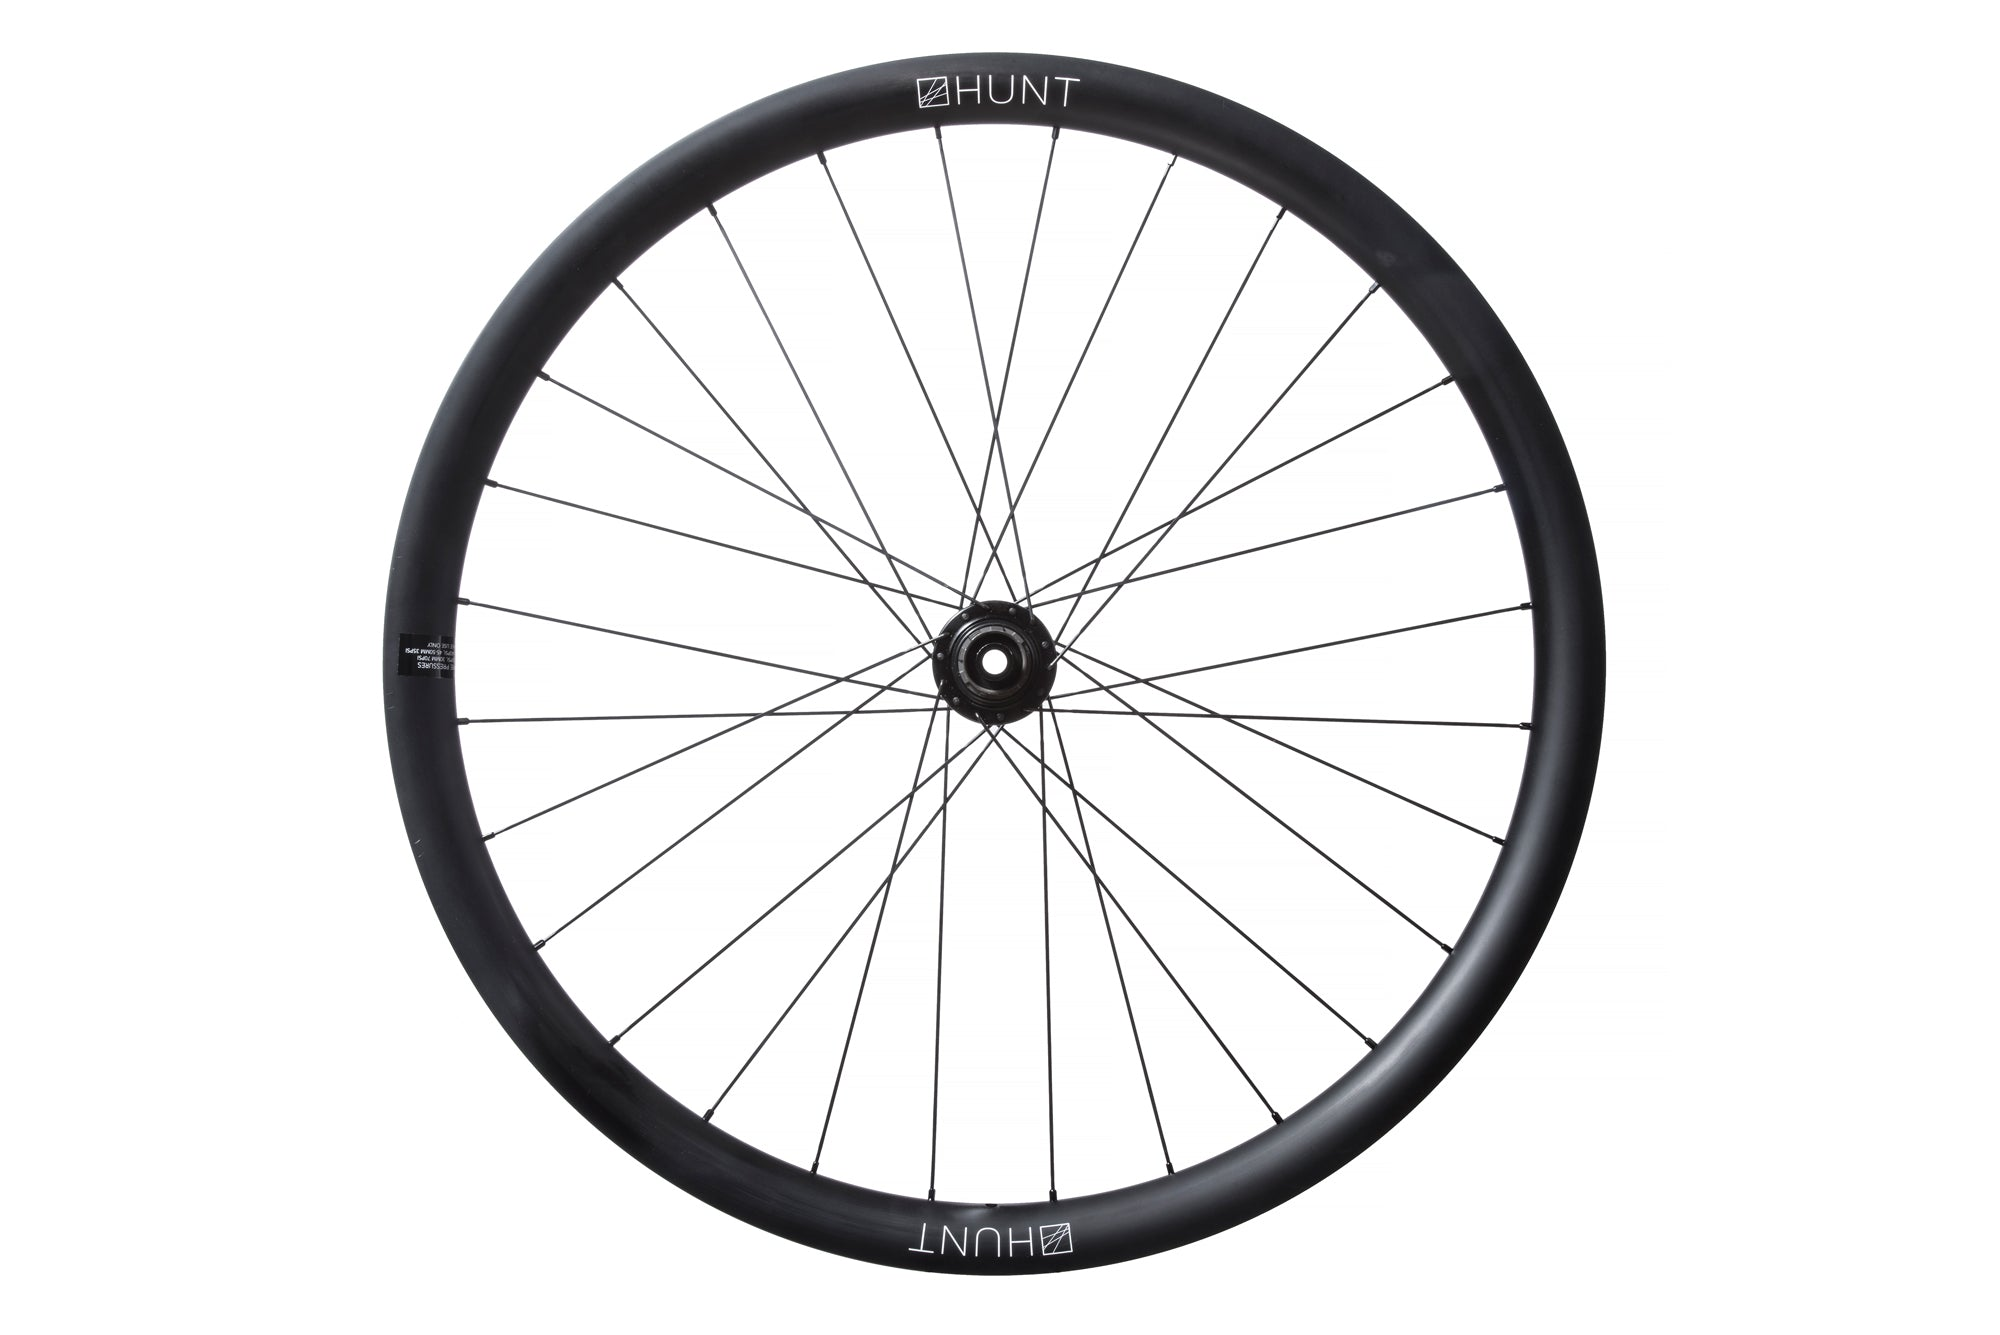 <h1>Spokes</h1><i>We chose the top-of-the-range Pillar Spoke Re-enforcement PSR XTRA models. These butted blade aero spokes are lighter and provide a greater degree of elasticity to maintain tensions and add fatigue resistance. These PSR J-bend spokes feature the 2.2 width at the spoke head providing more material in this high stress area. The nipples come with a square head so you can achieve precise tensioning. Combining these components well is key which is why all Hunt wheels are hand-built.</i>